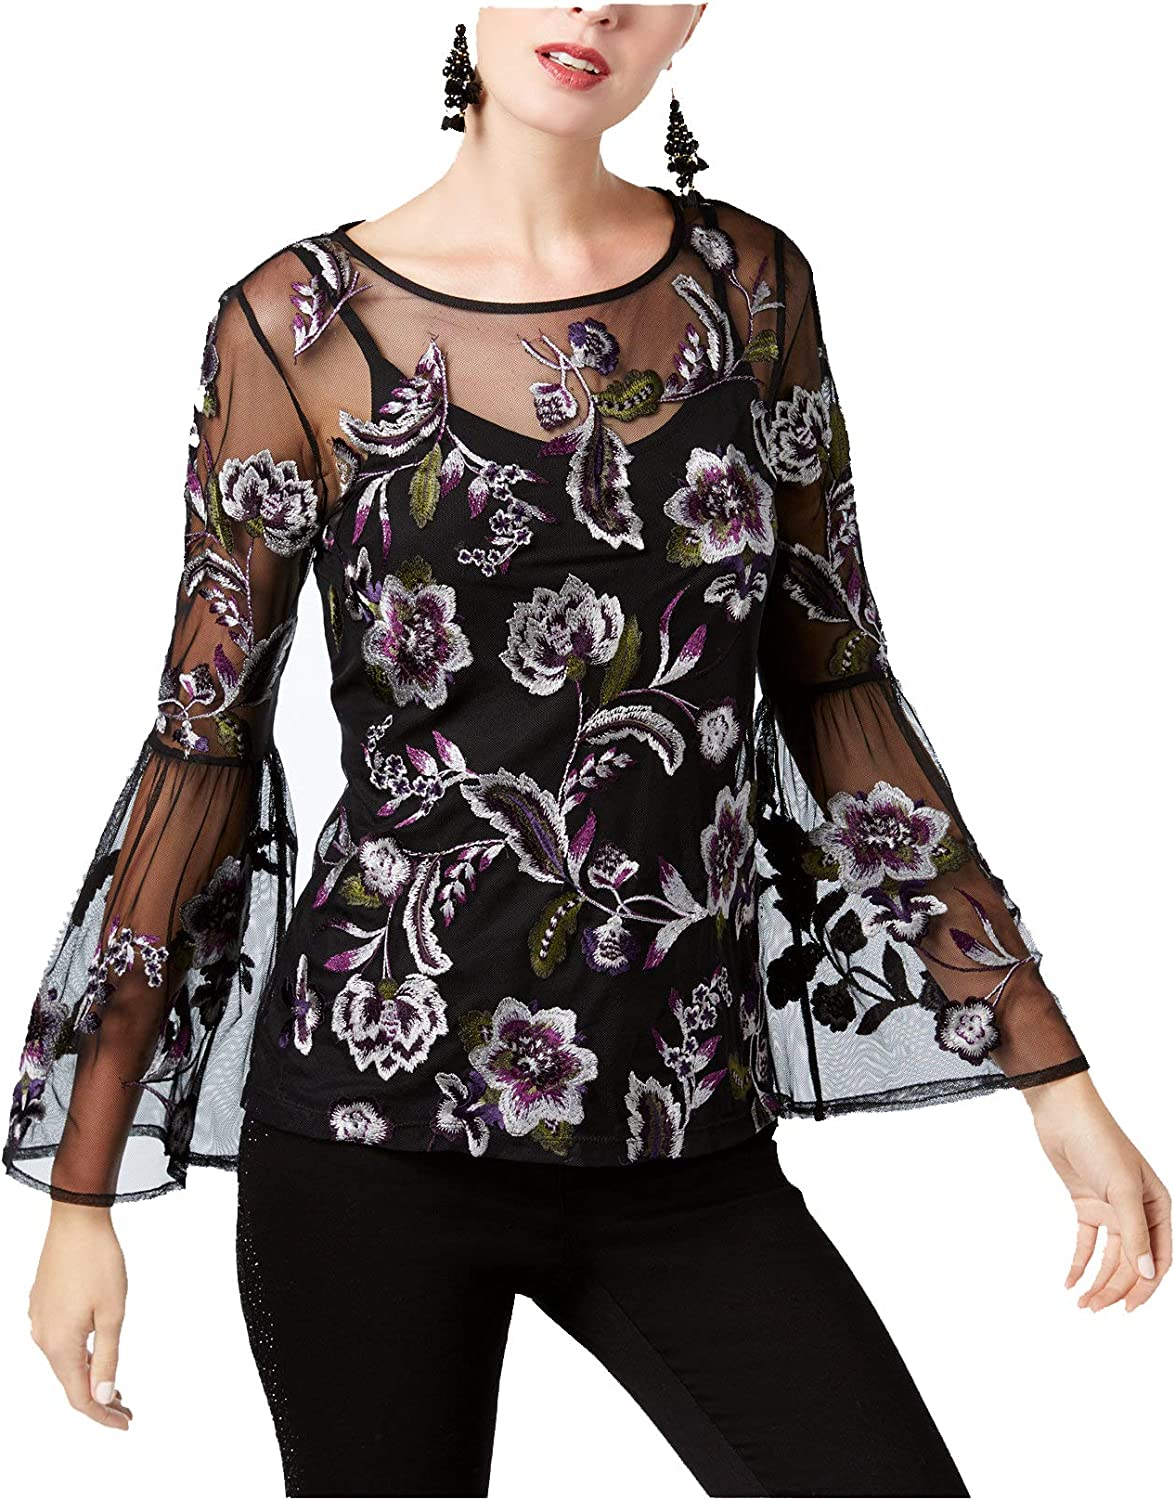 INC International Concepts Women's Embroidered Sheer BellSleeve Top